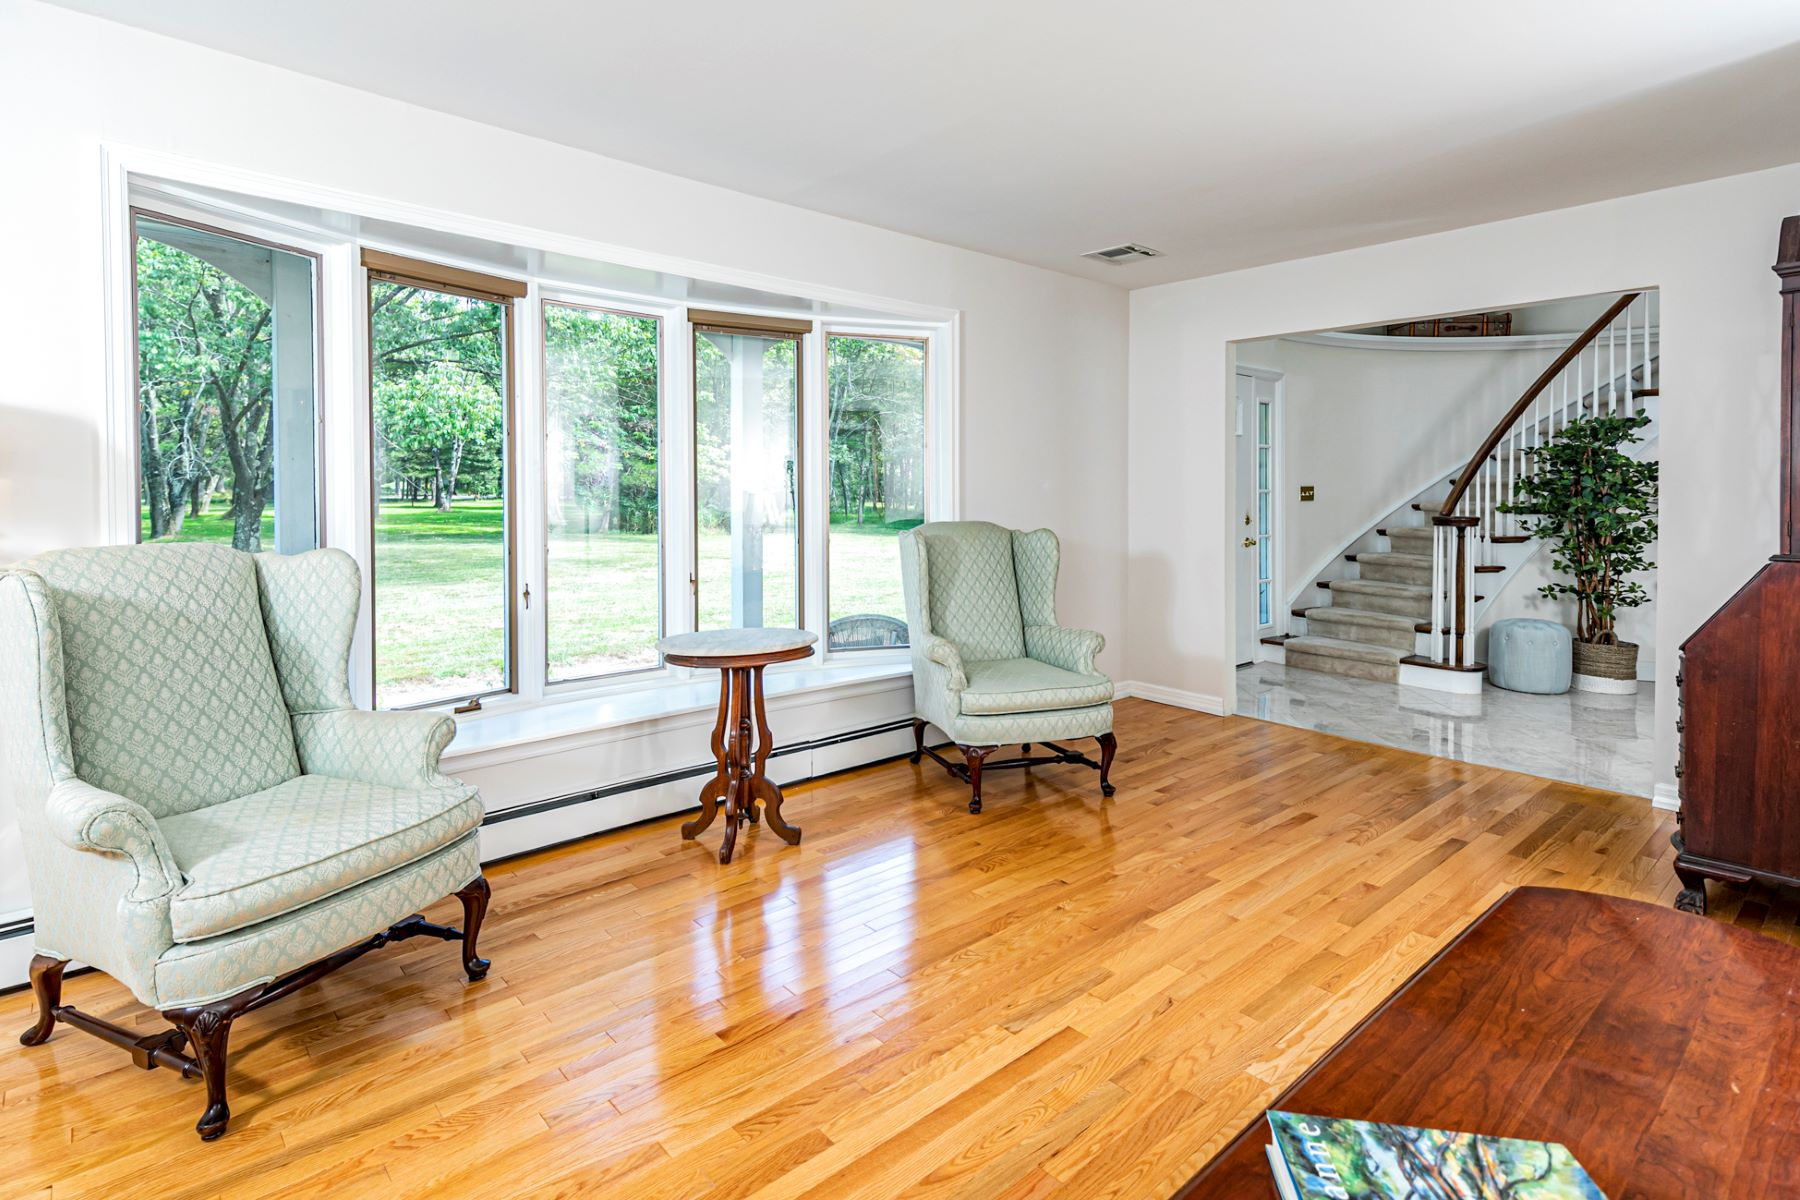 Additional photo for property listing at The Living Is Easy In This Impressive Hopewell Home 12 Bayberry Road, Princeton, New Jersey 08540 United States